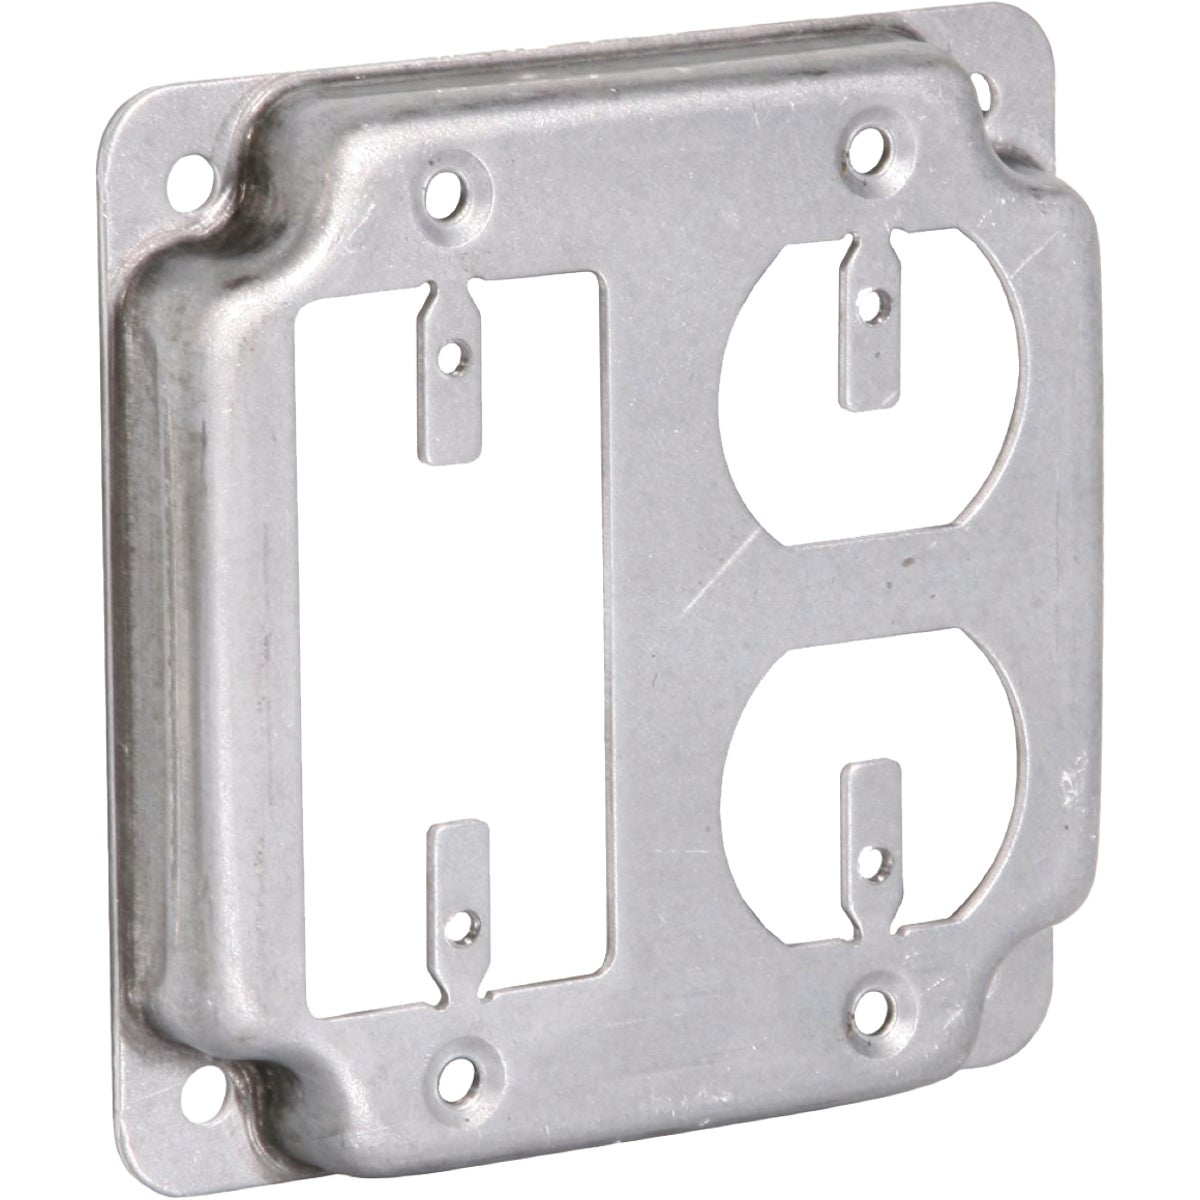 "4"" SQ GFI/OUTLET COVER - RS19CC by Thomas & Betts"